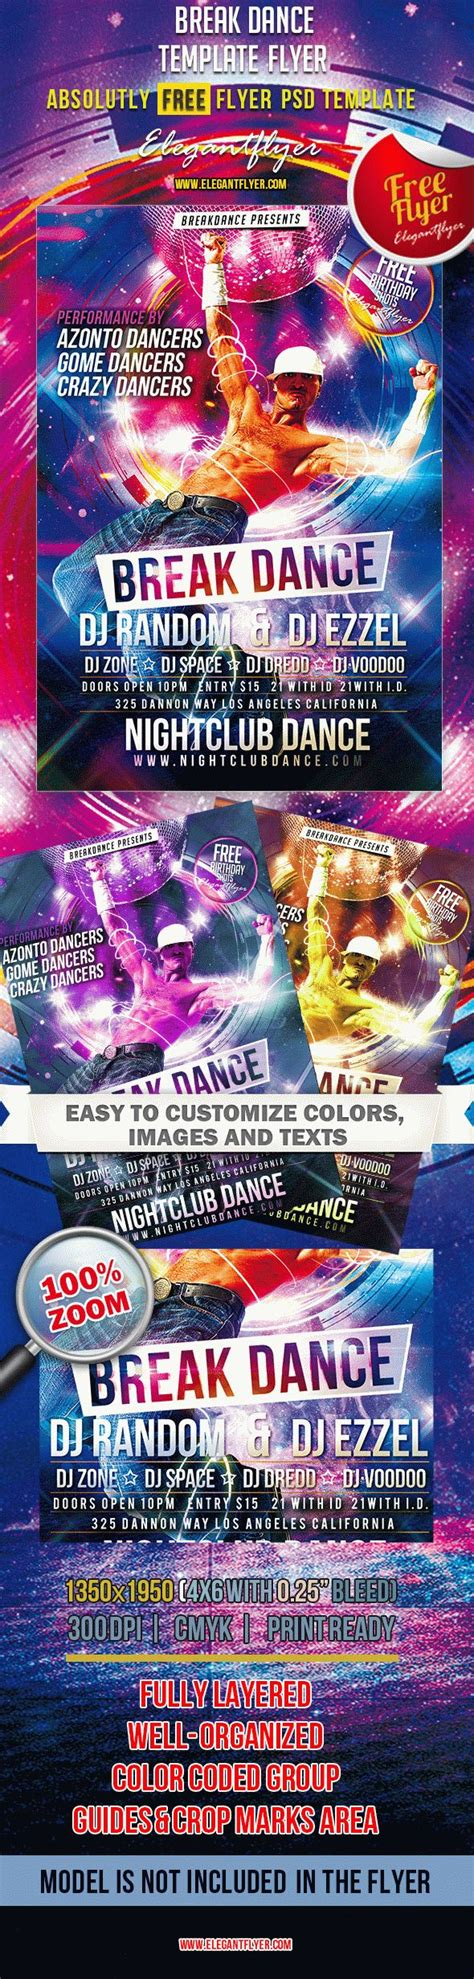 template flyer disco party break dance free club and party flyer psd template by